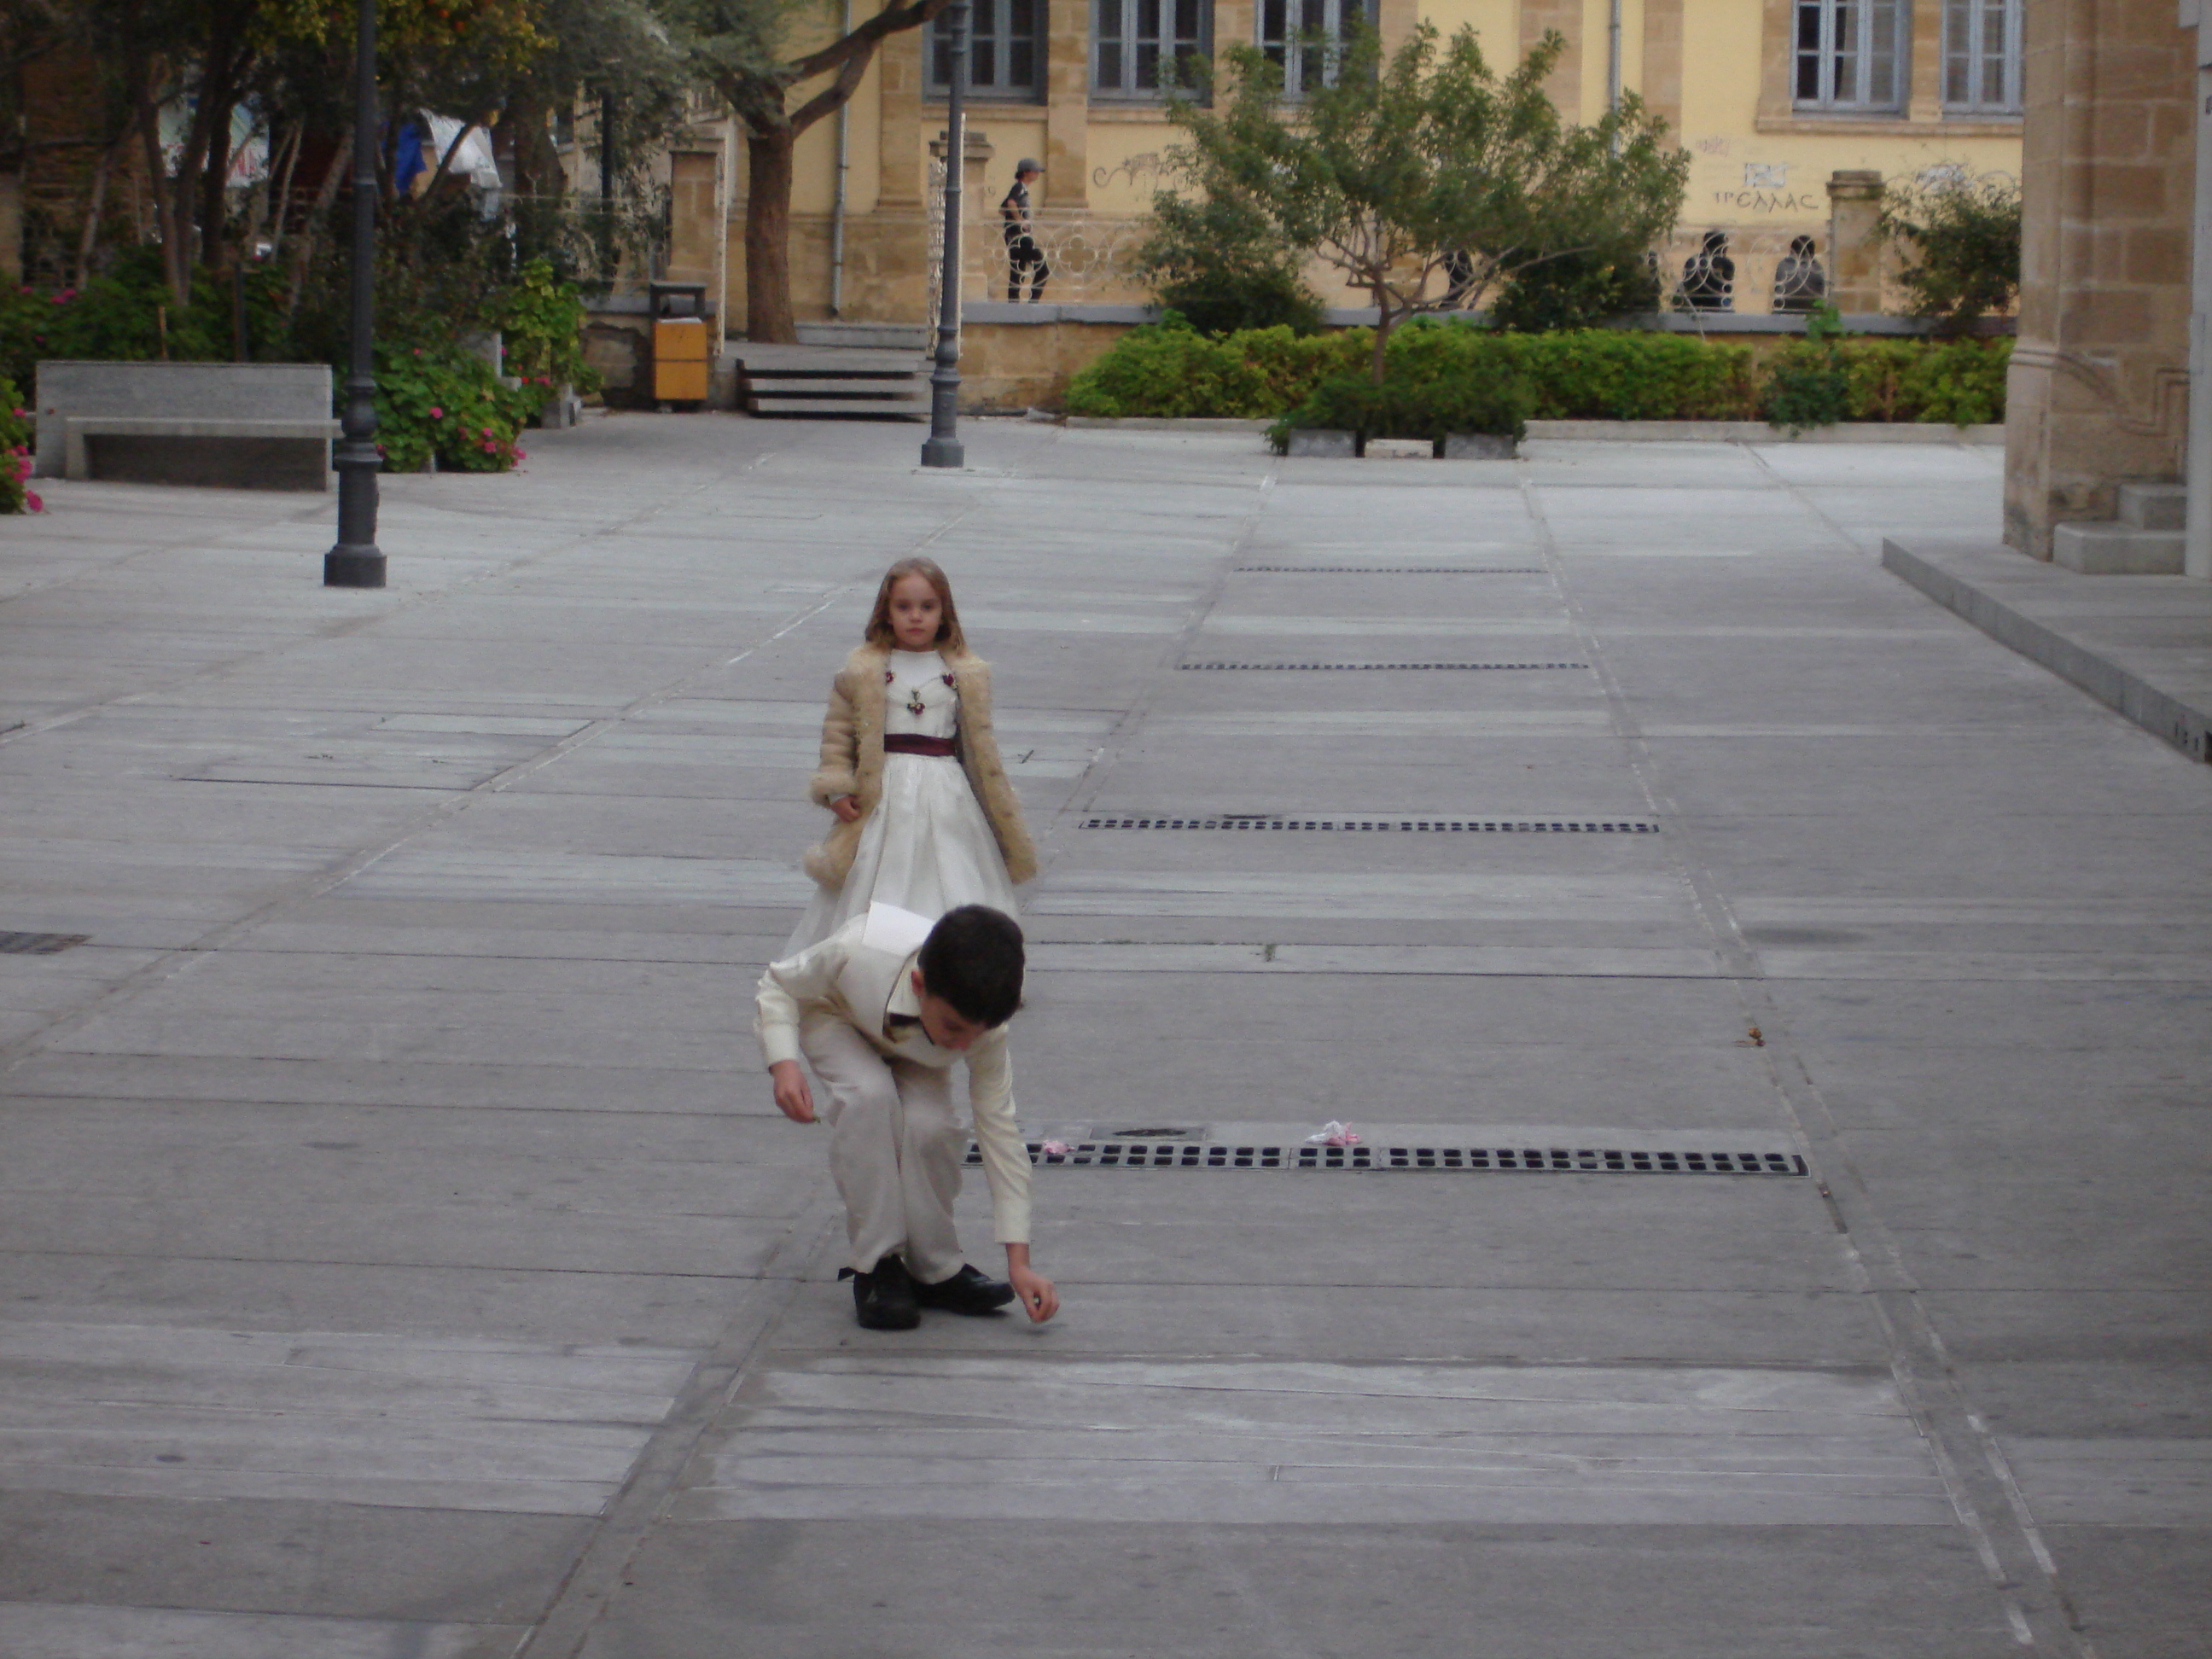 Two children attending a nearby wedding